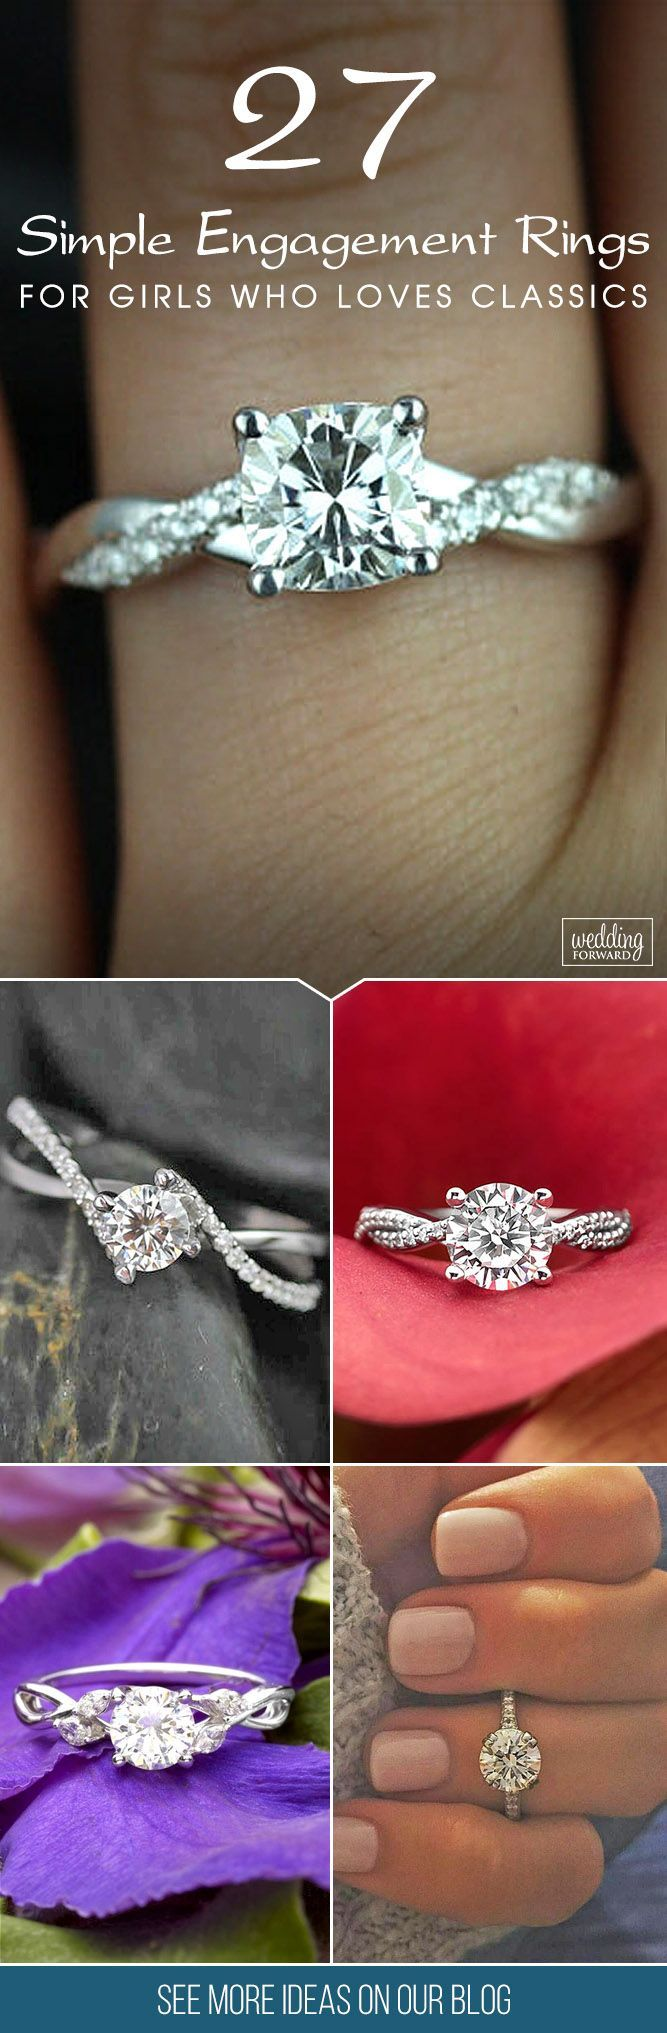 27 Simple Engagement Rings For Girls Who Loves Classics. ❤️ Simple engagement rings have various styles and designs.  In the classic version can be one diamond, two or three stones. See more: http://www.weddingforward.com/simple-engagement-rings/ #simple #engagement #rings